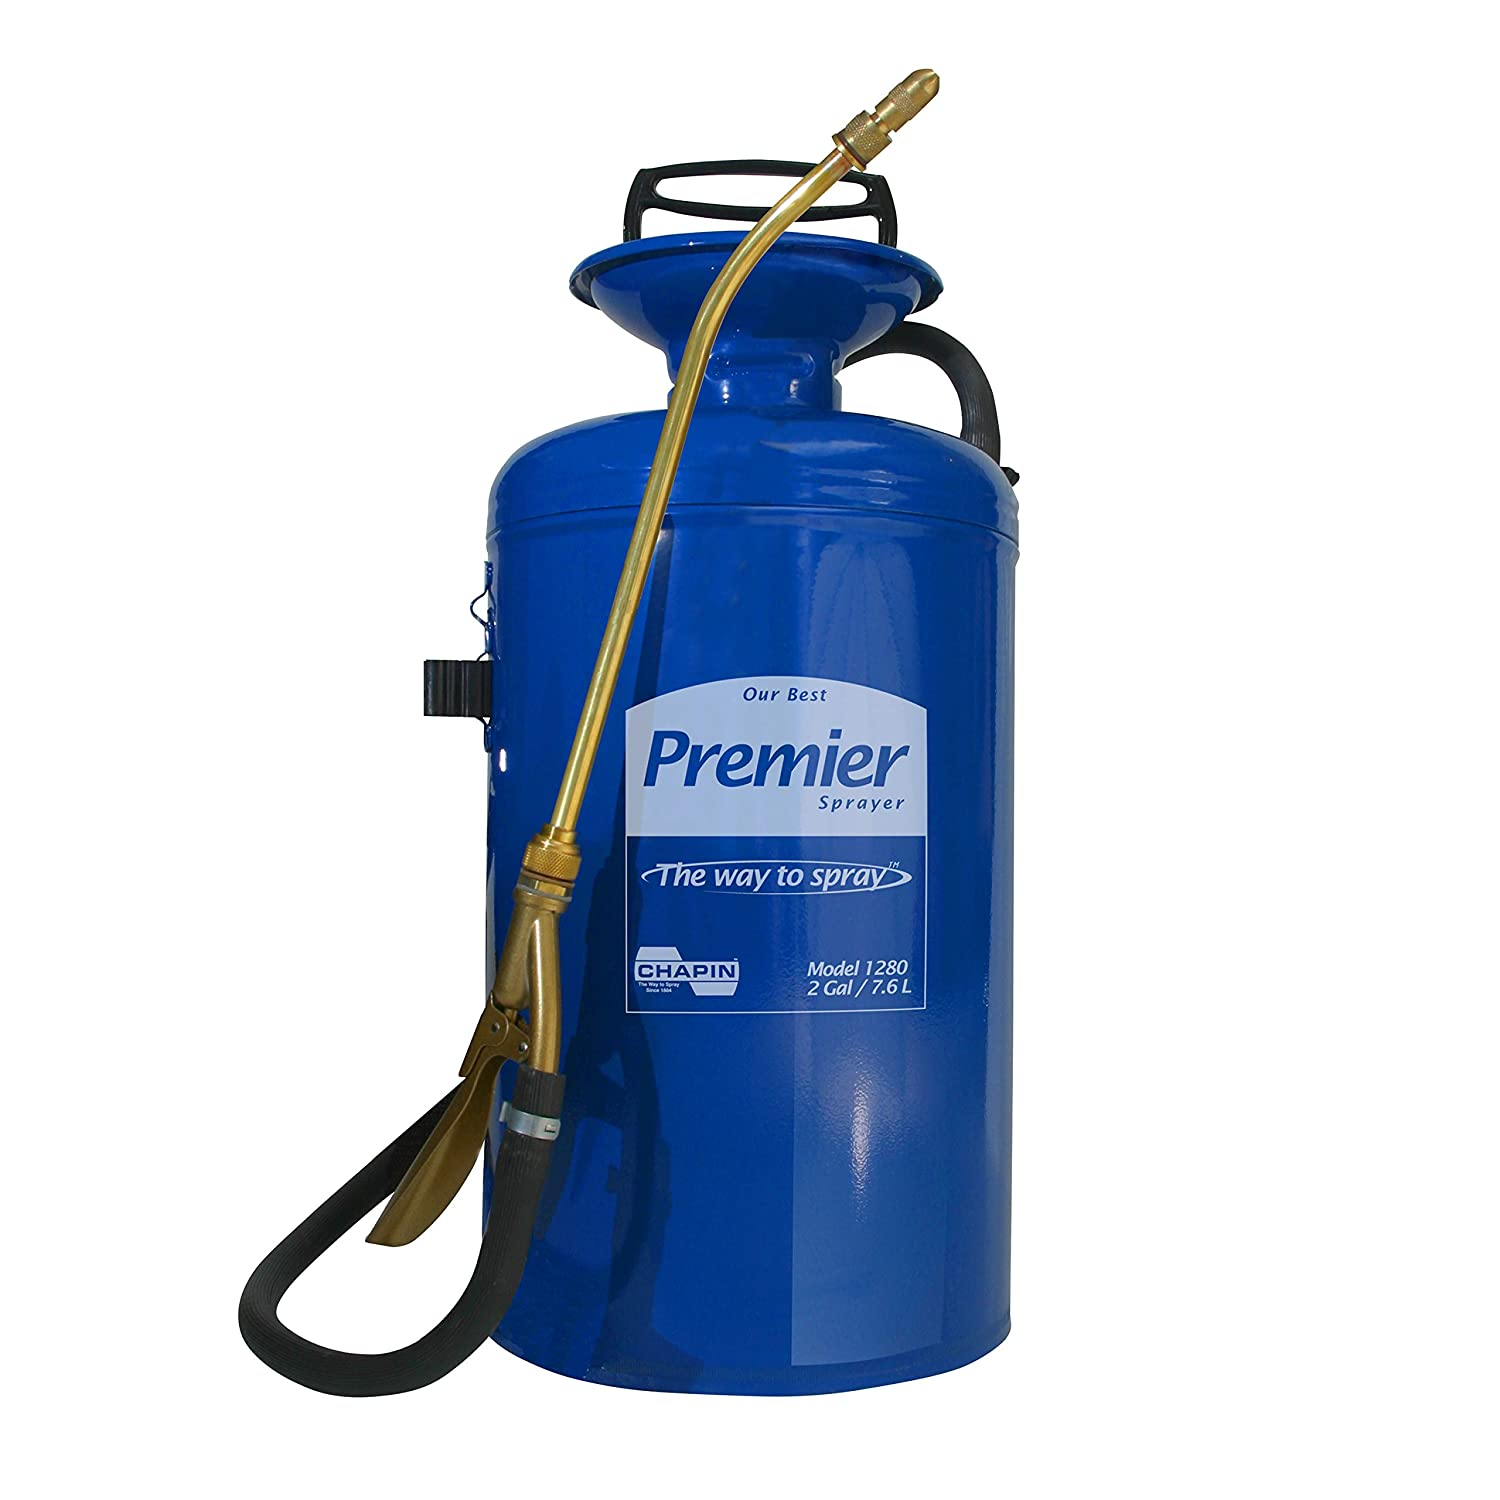 Chapin 1280 Premier Pro 2-Gallon Tri-Poxy Steel Sprayer For Fertilizer, Herbicides and Pesticides